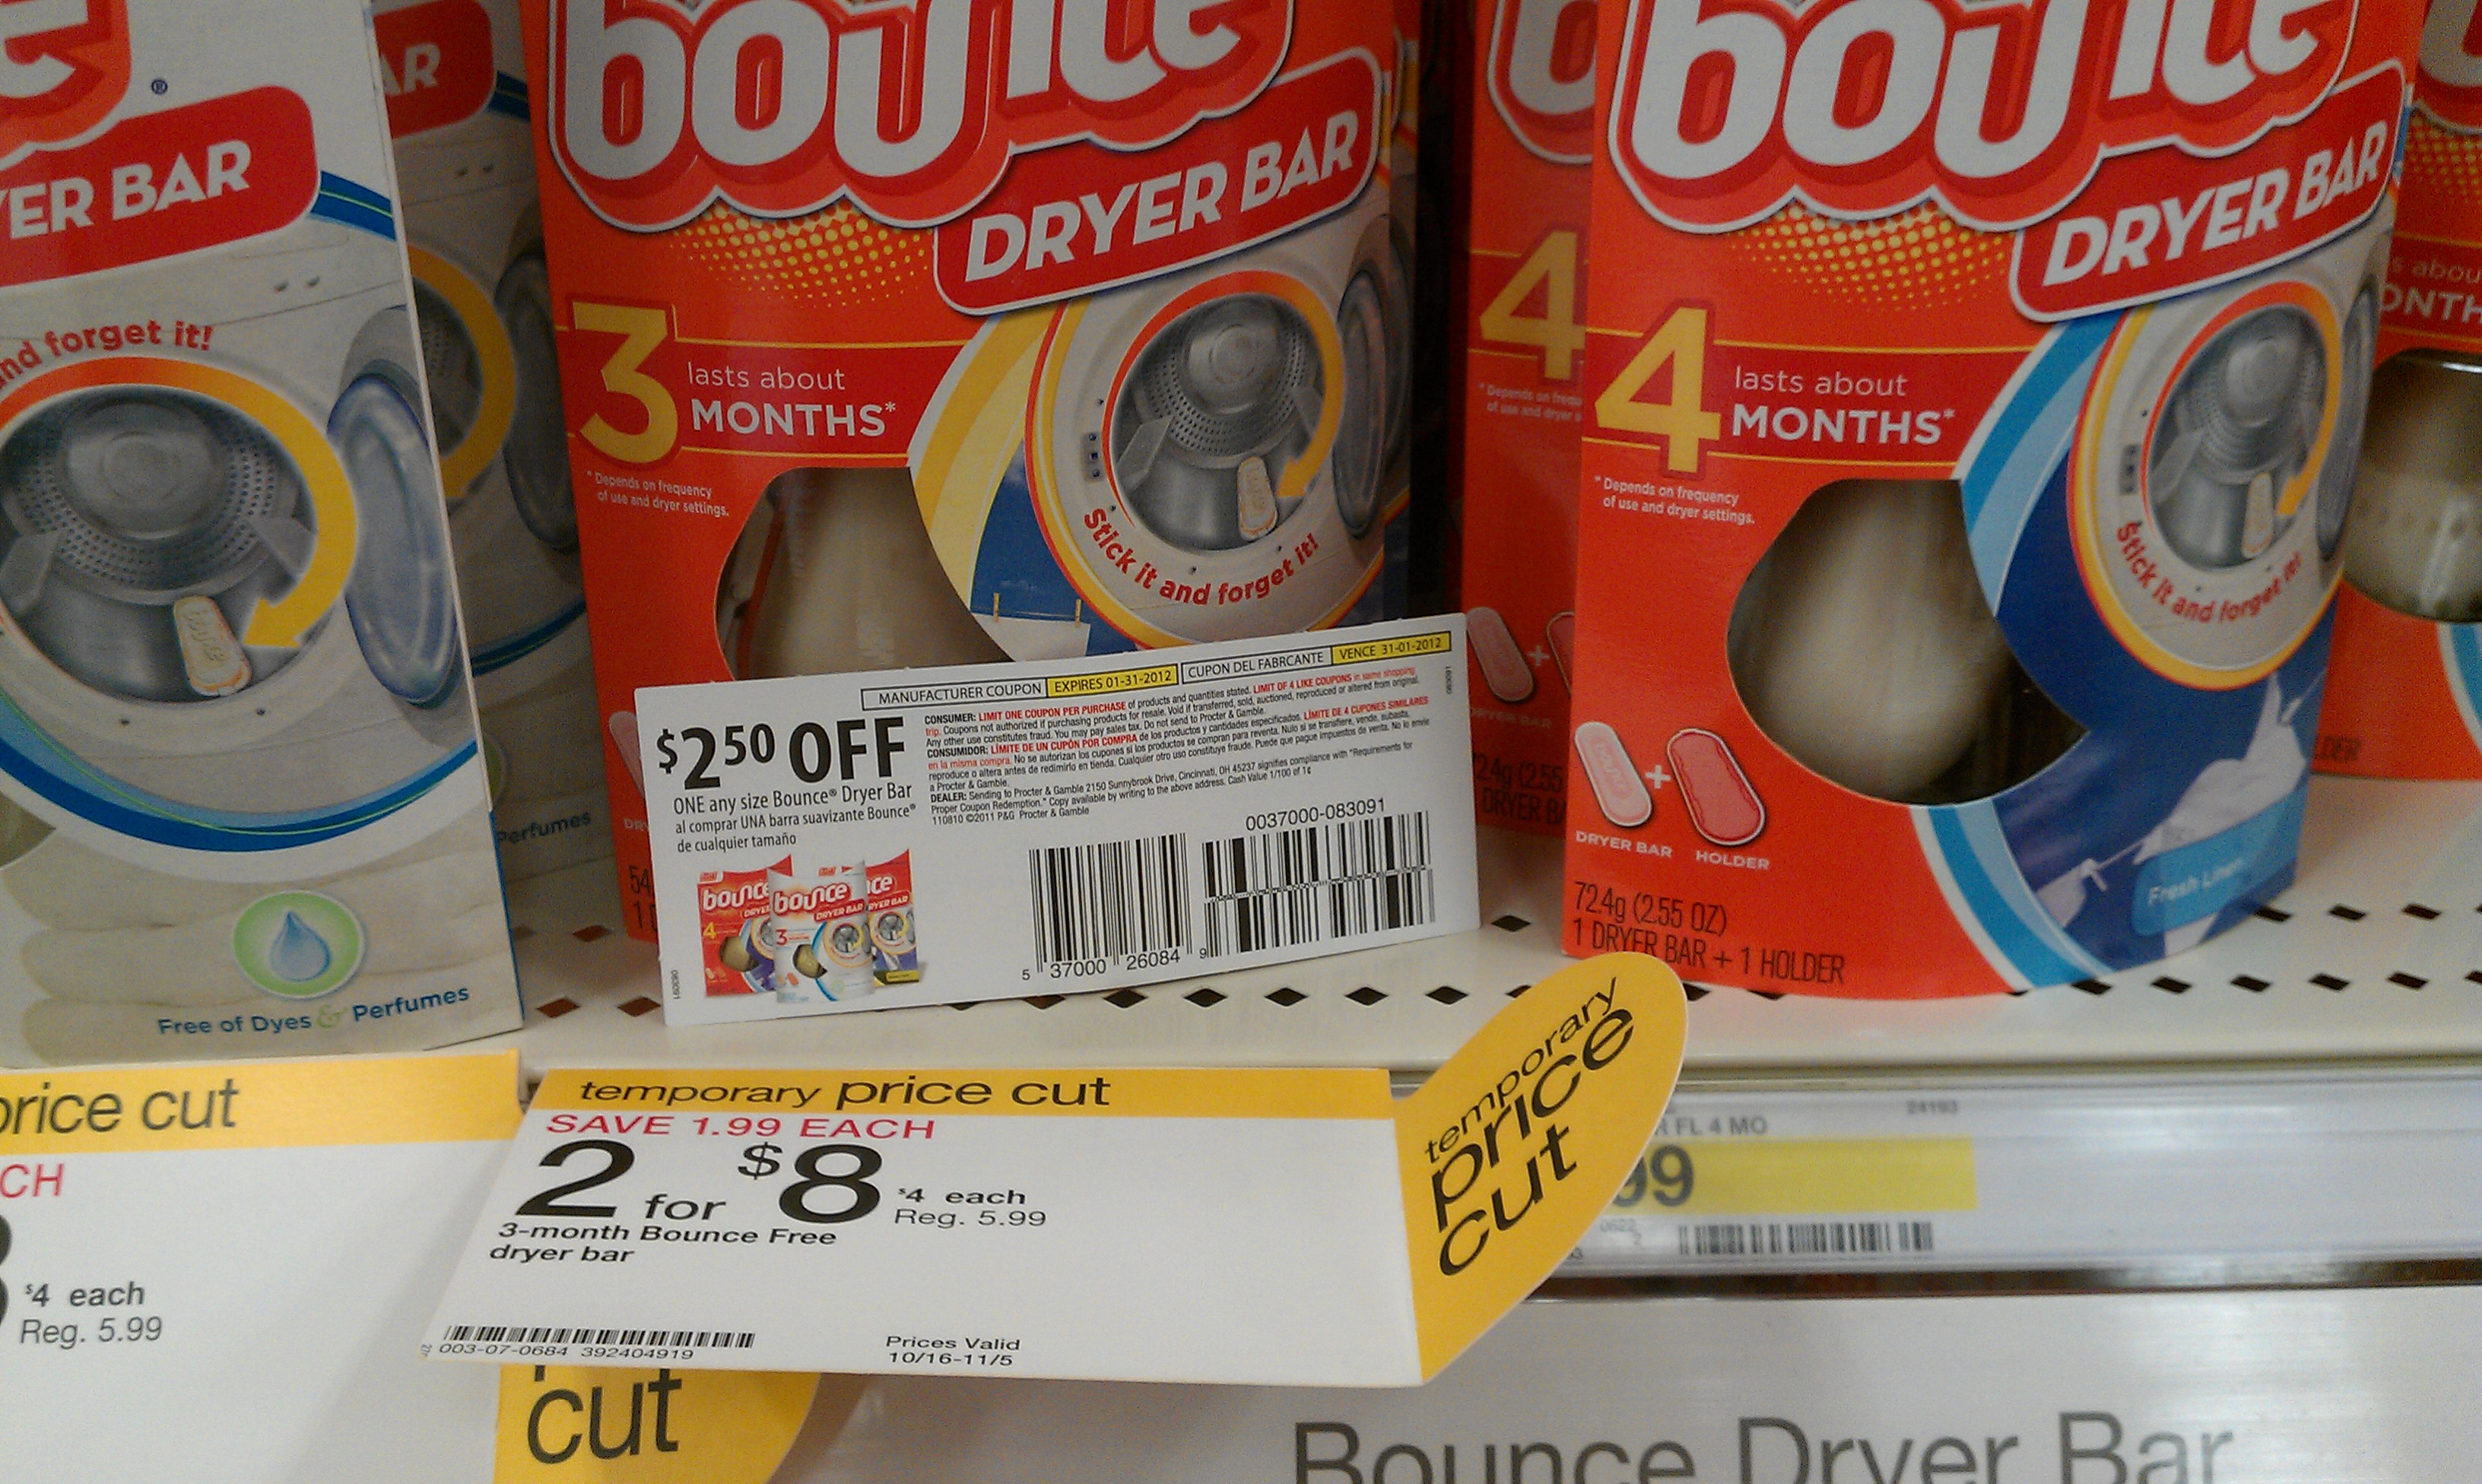 Bounce dryer bar coupons